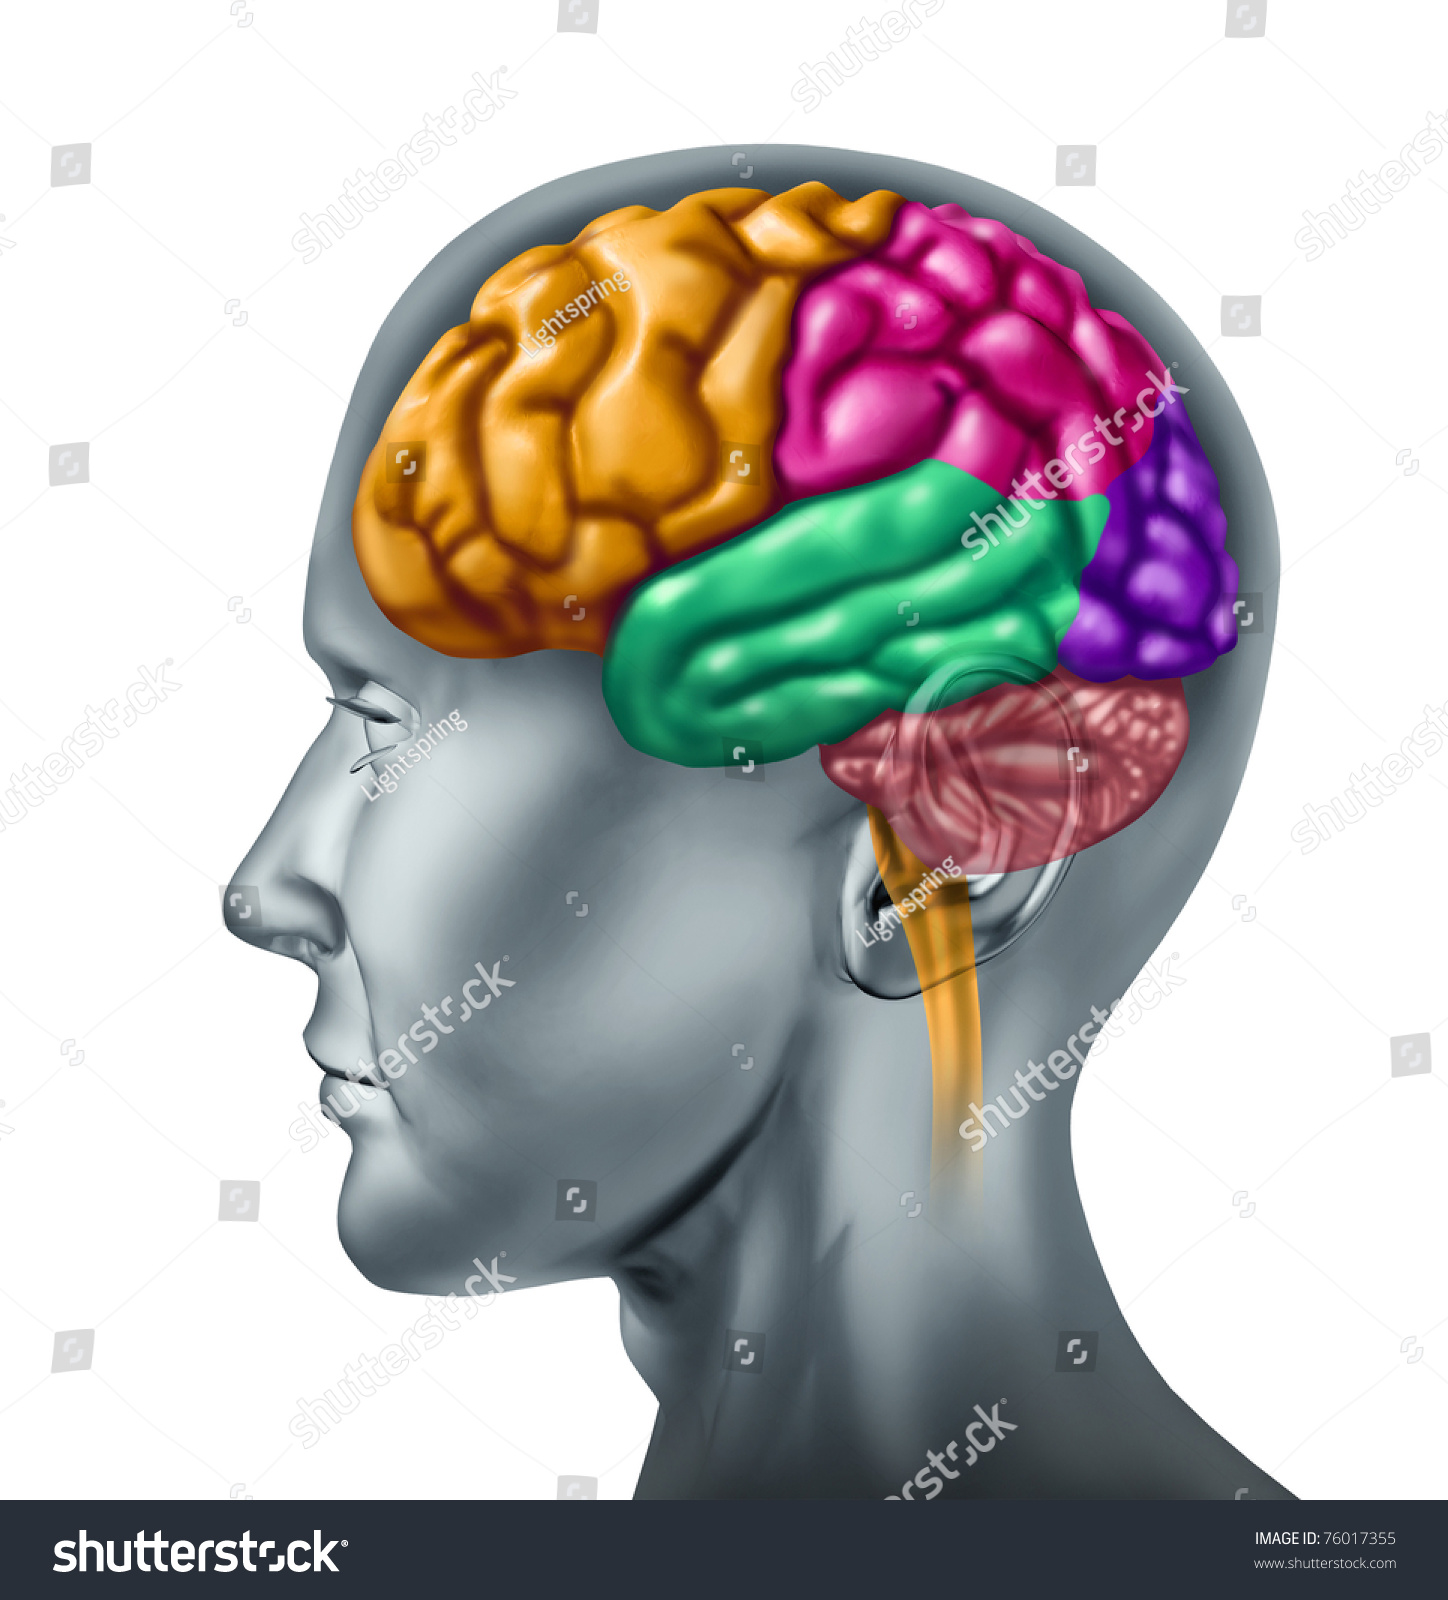 Brain Lobe Sections With Divisions In Color Representing